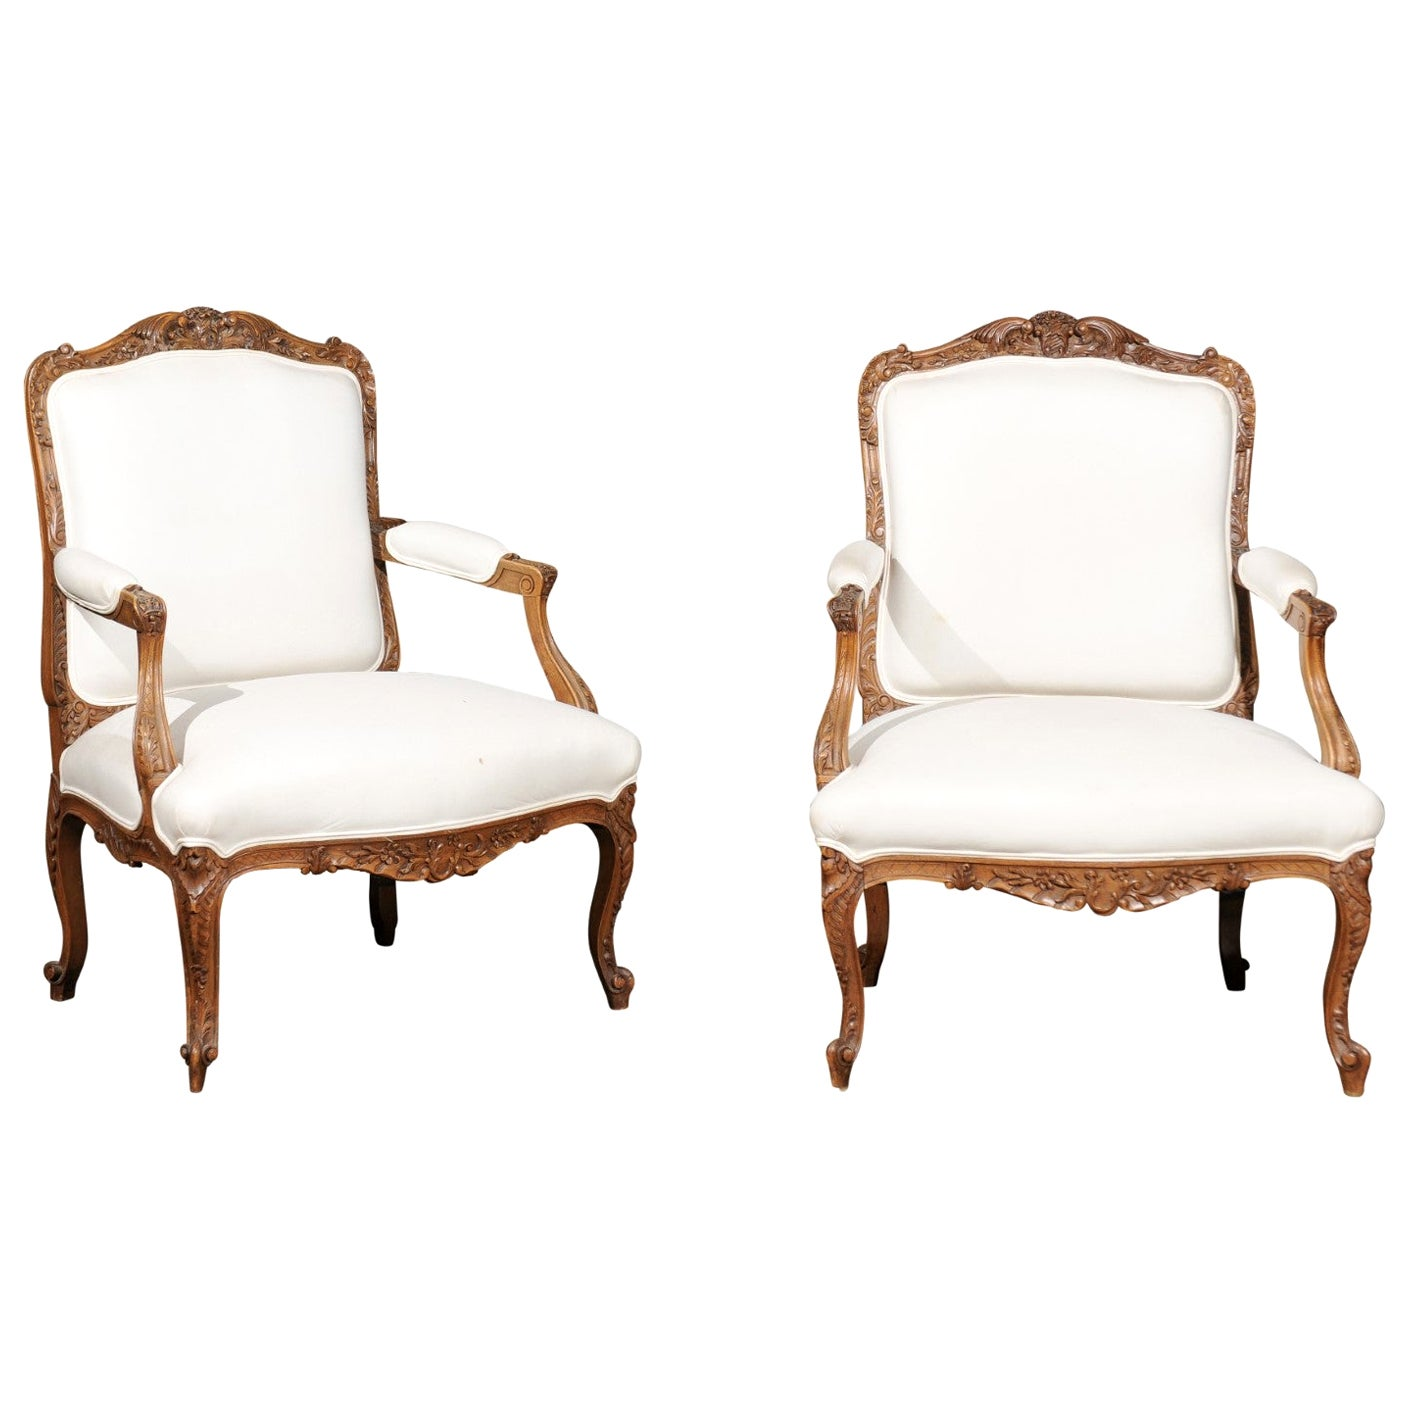 Pair of Italian 19th Century Rococo Style Carved Walnut Upholstered Armchairs